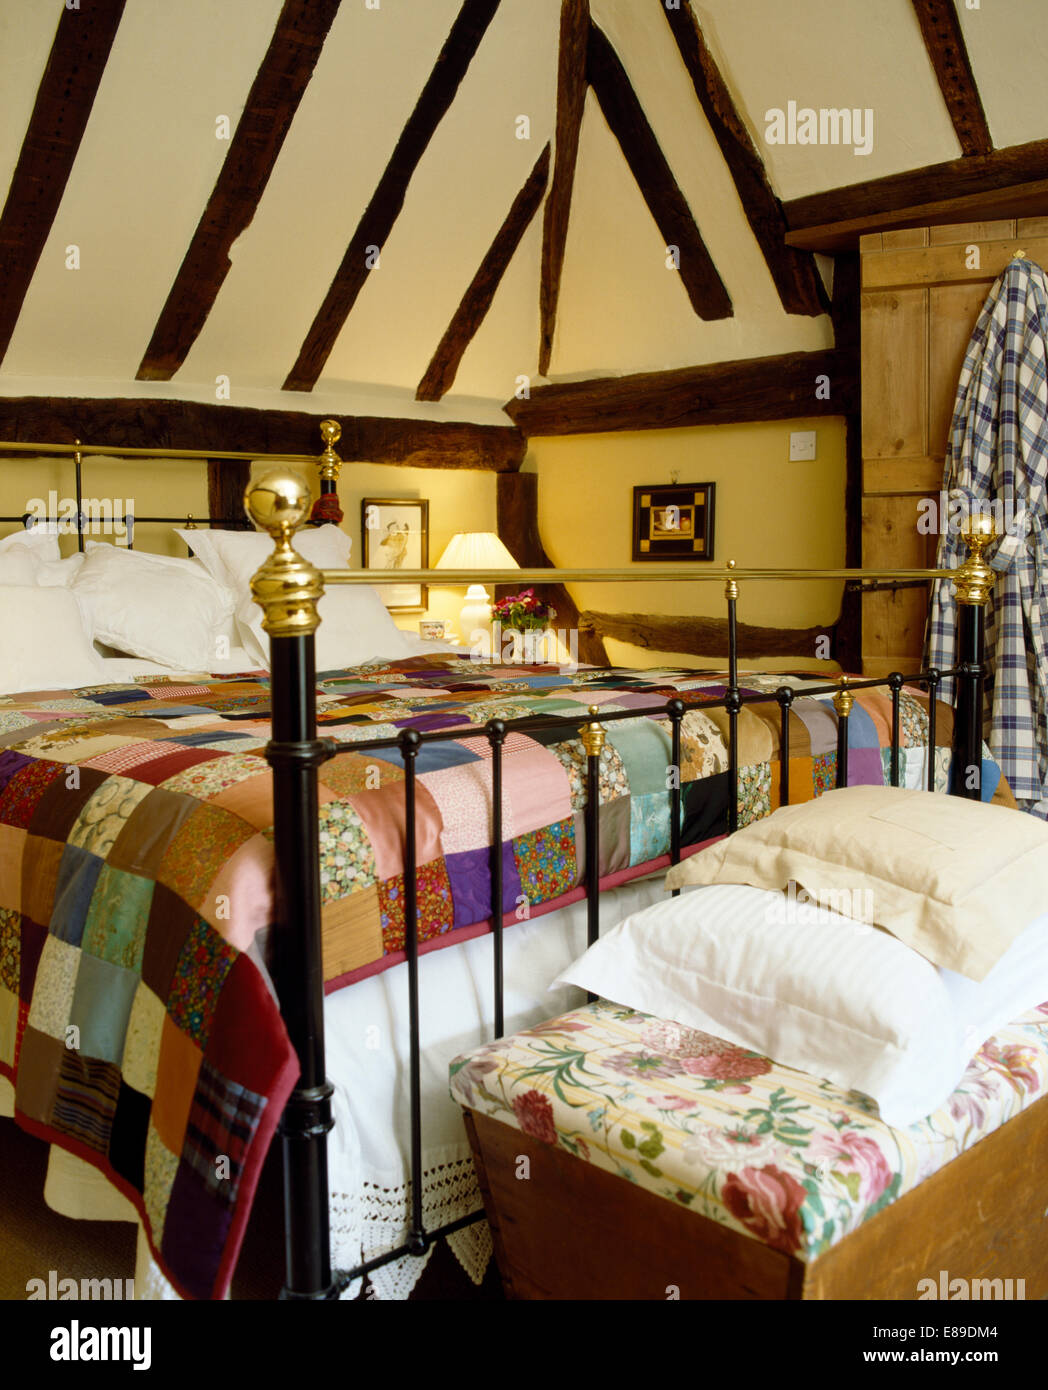 Colourful patchwork quilt on antique brass bed in cottage bedroom ... : colourful patchwork quilt - Adamdwight.com